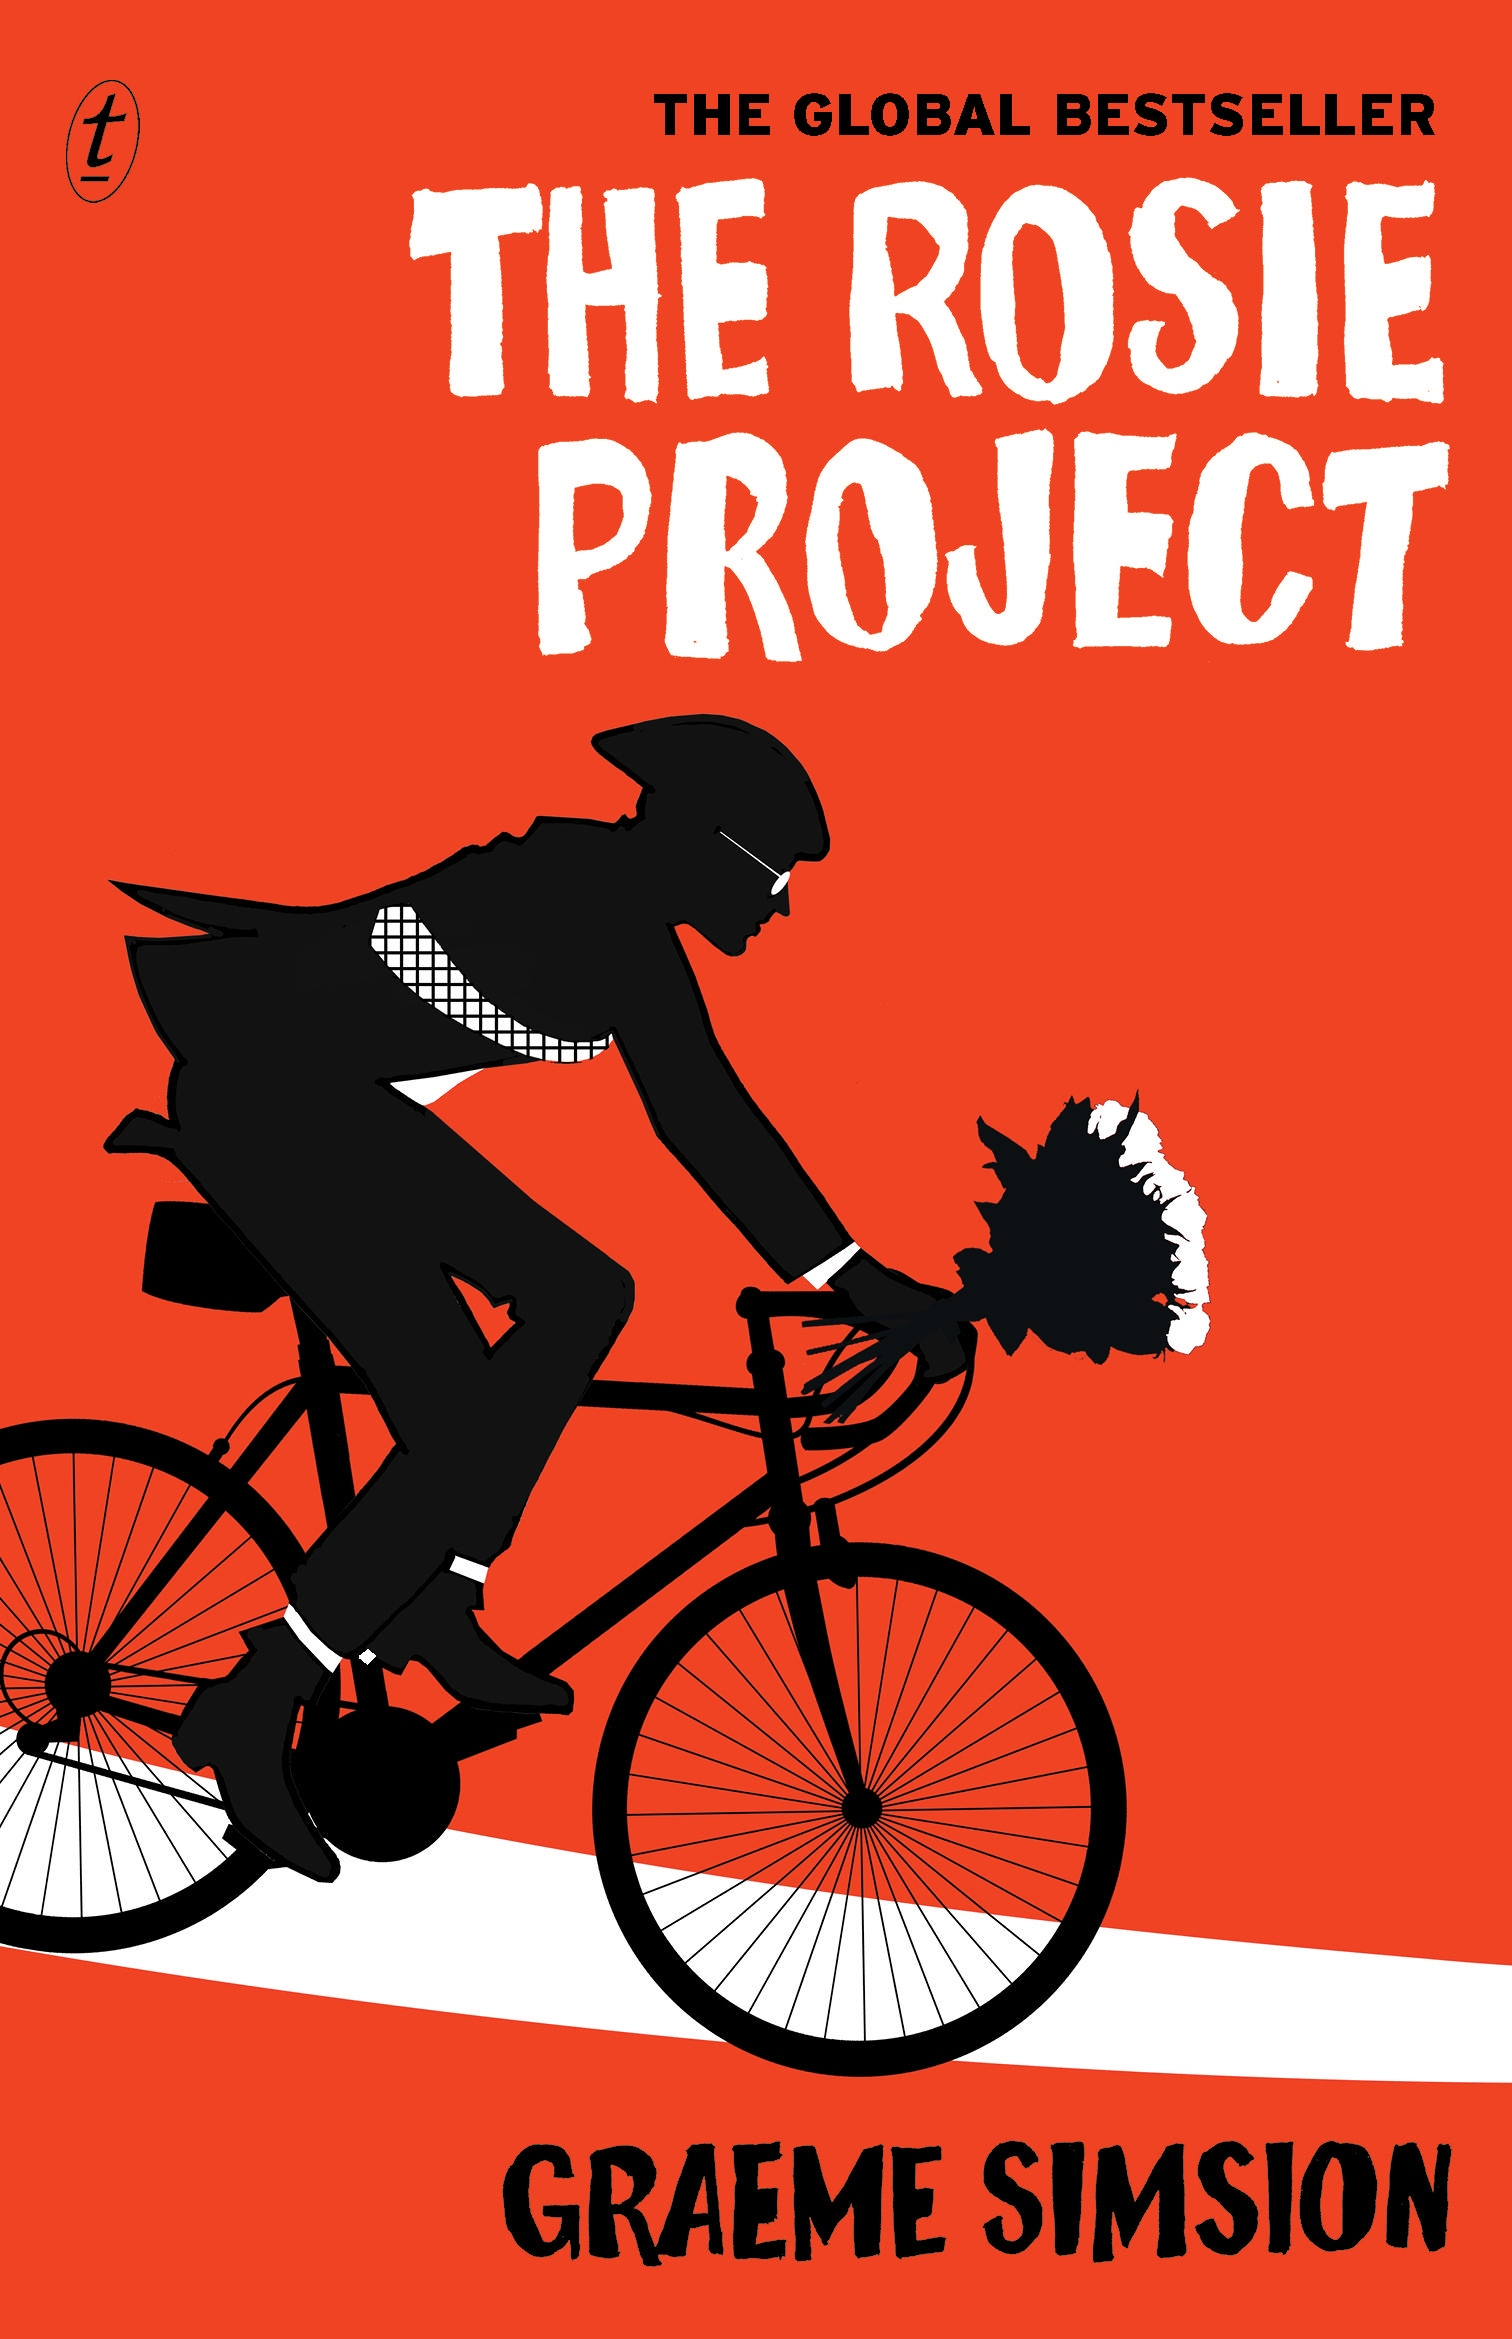 The Rosie Project by Graeme Simsion, ISBN: 9781922147844